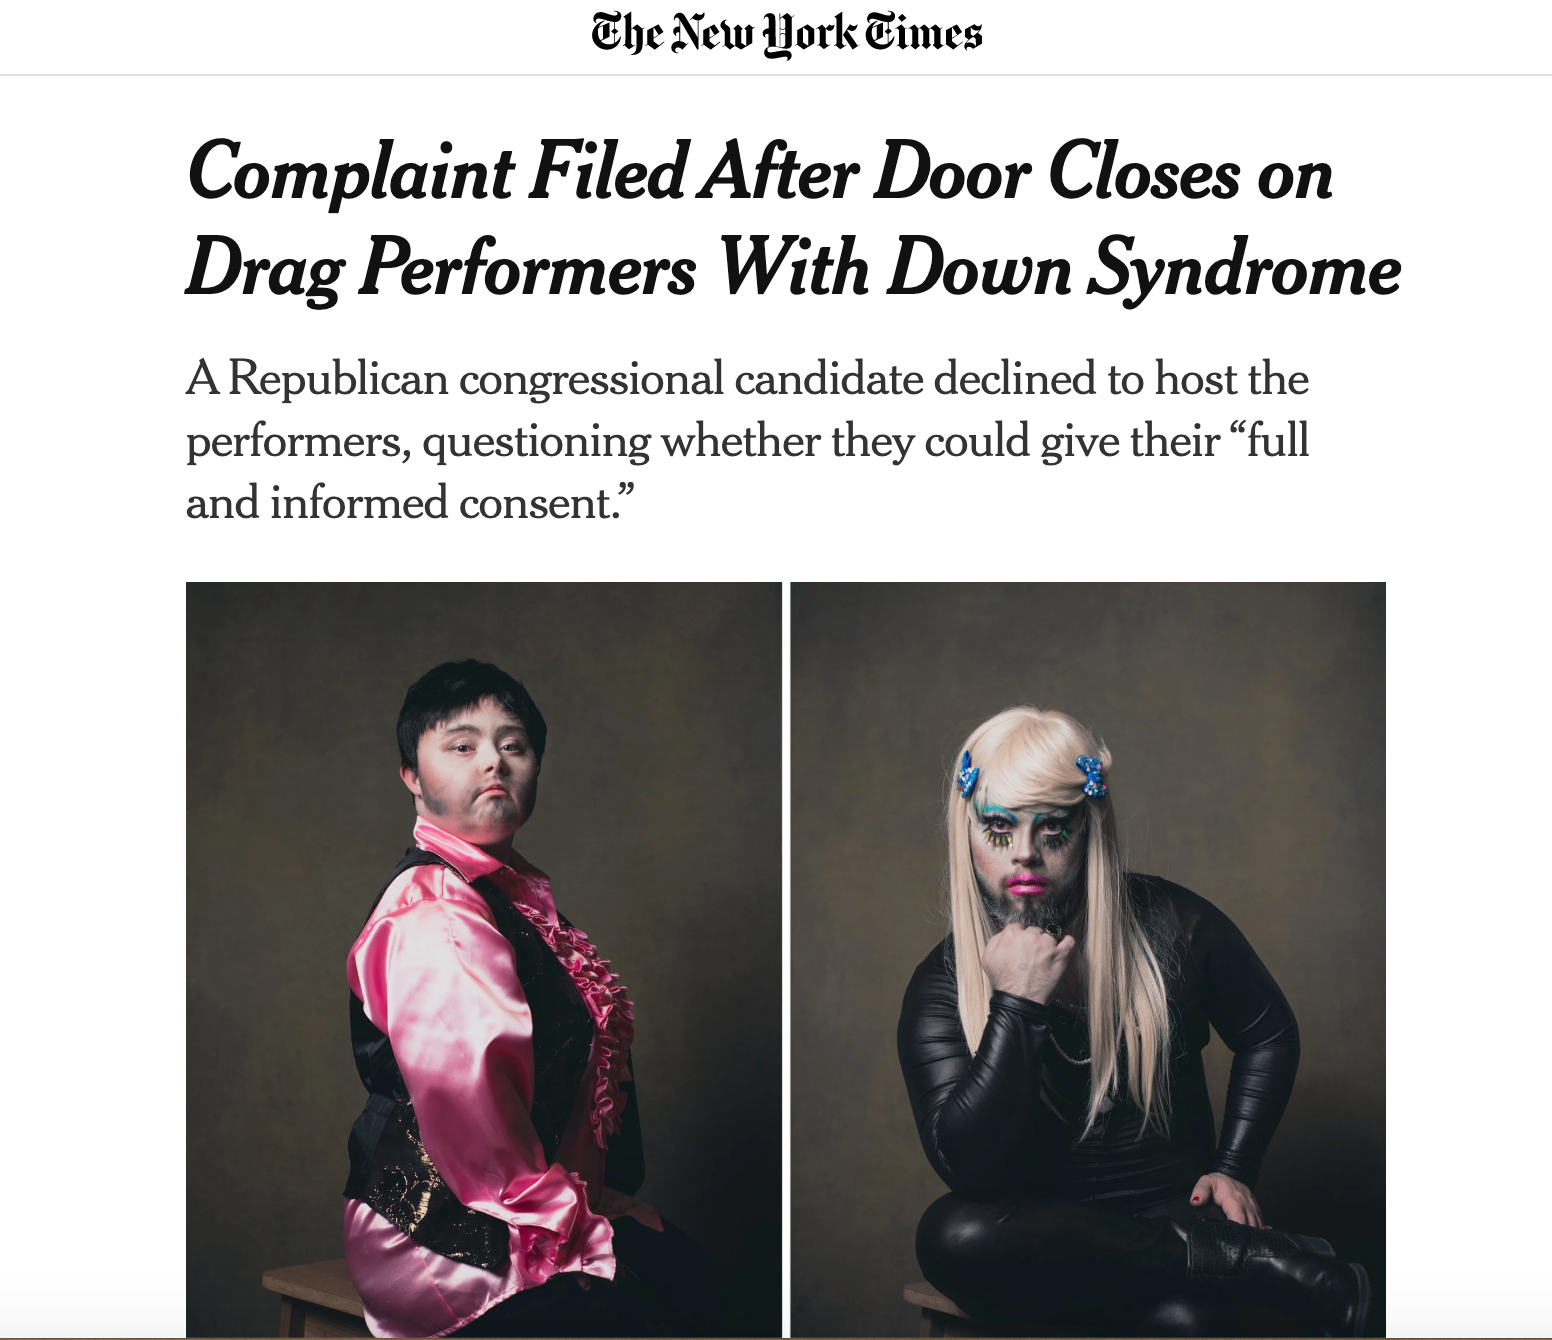 The New York Times : C omplaint Filed After Door Closes on Drag Performers With Down Syndrome